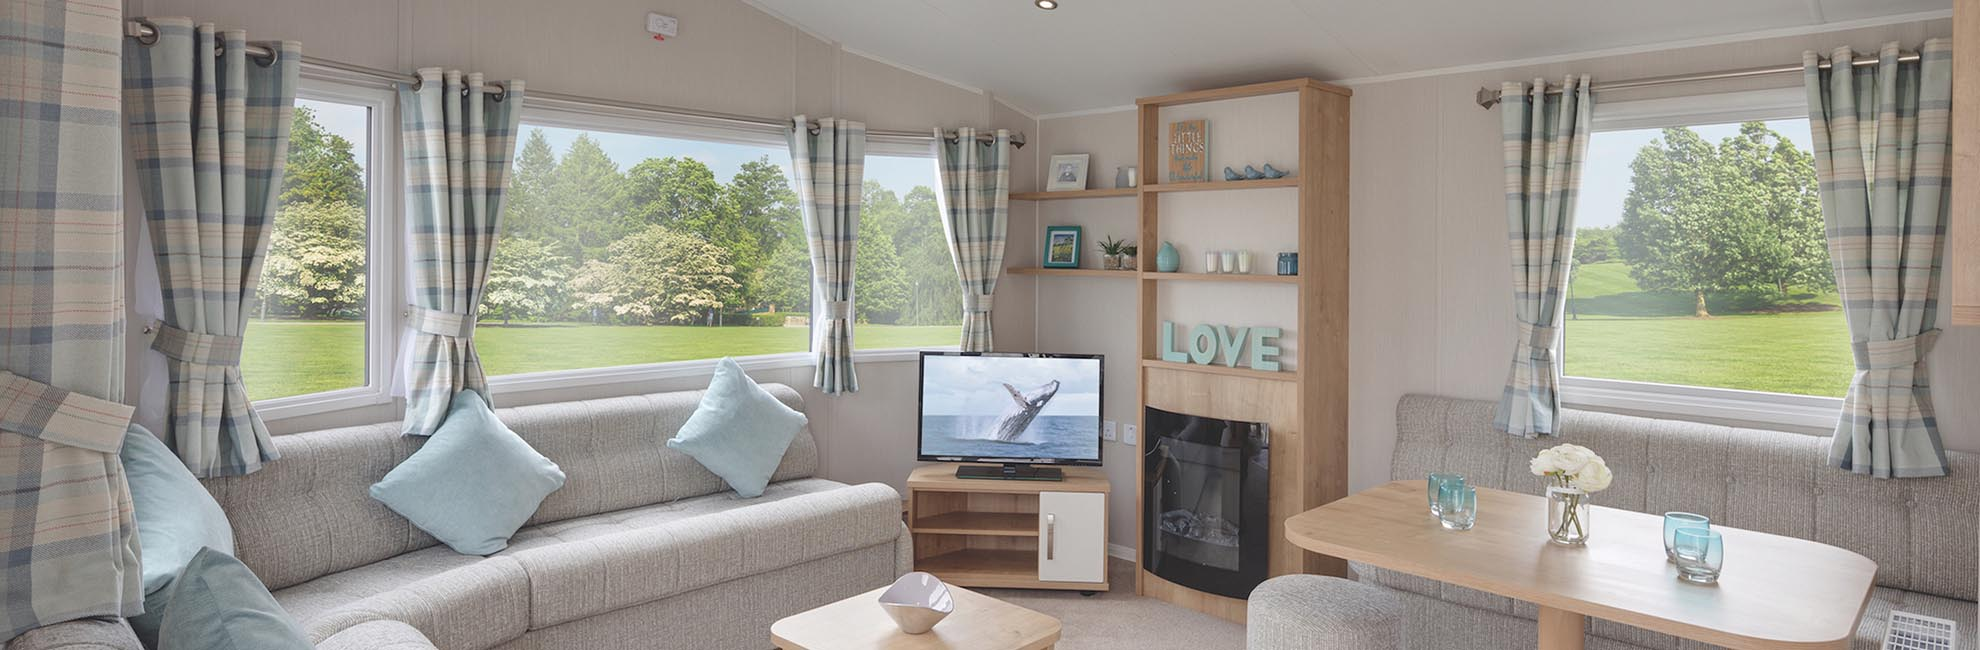 Over 1,400 Caravans & Lodges for Sale in the UK | Parkdean